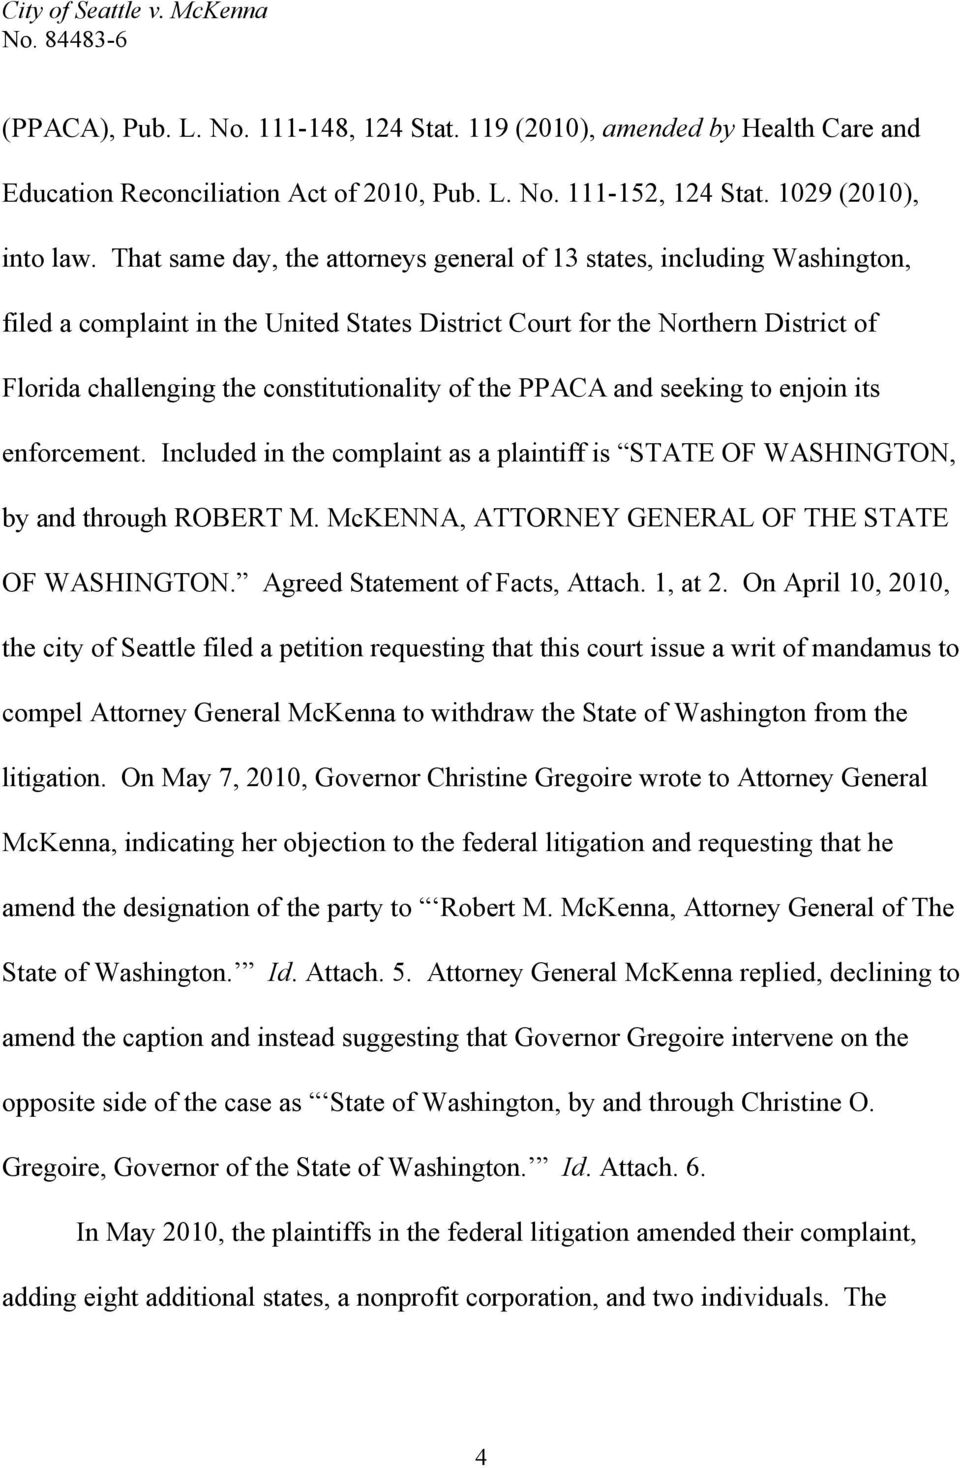 of the PPACA and seeking to enjoin its enforcement. Included in the complaint as a plaintiff is STATE OF WASHINGTON, by and through ROBERT M. McKENNA, ATTORNEY GENERAL OF THE STATE OF WASHINGTON.